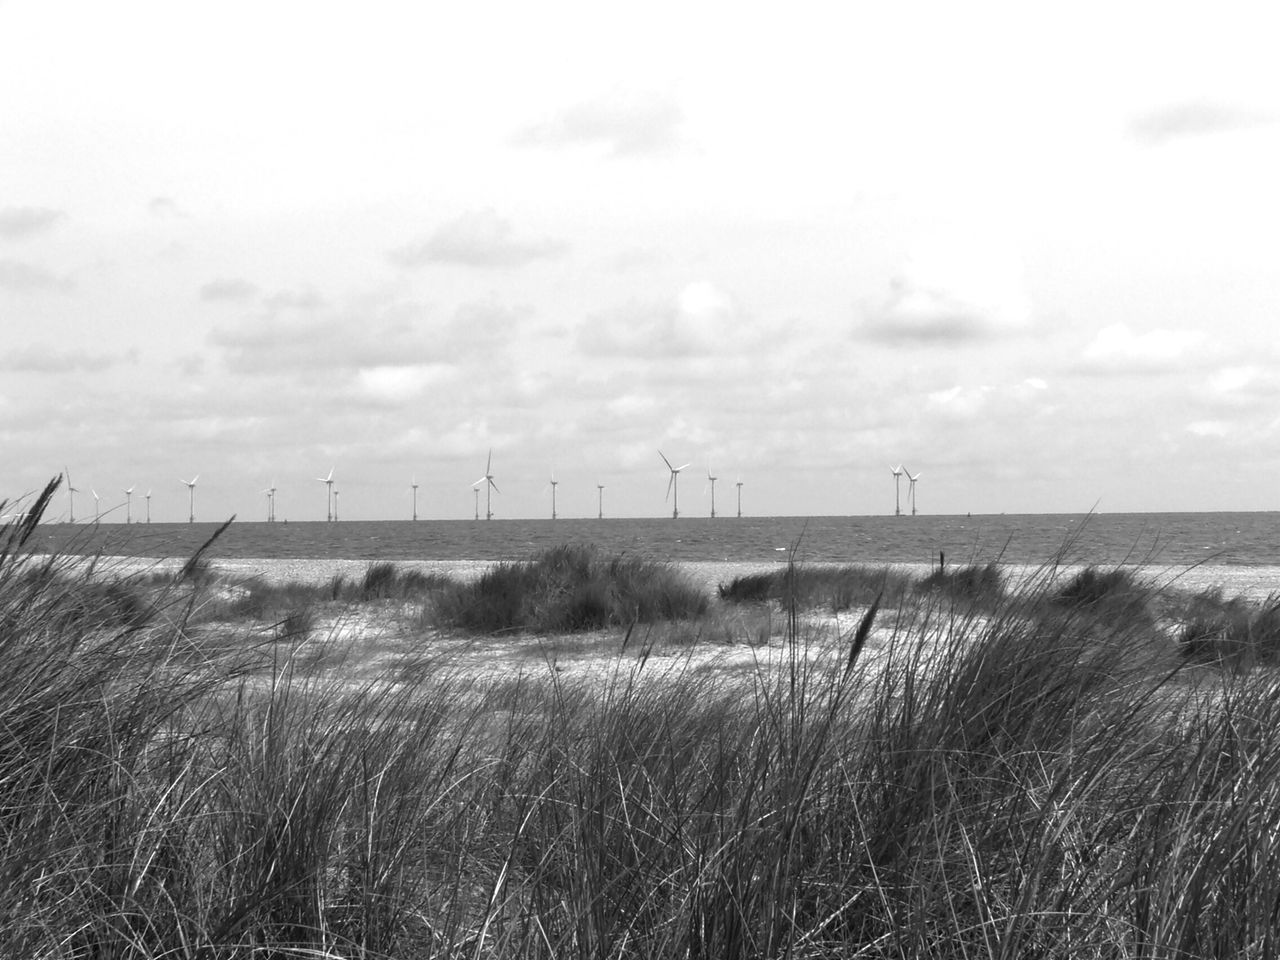 How Do We Build The World? Offshore Wind Farm Seascape Great Yarmouth Uk Less Pollution Sand Dunes Taking Photos Sea Grass